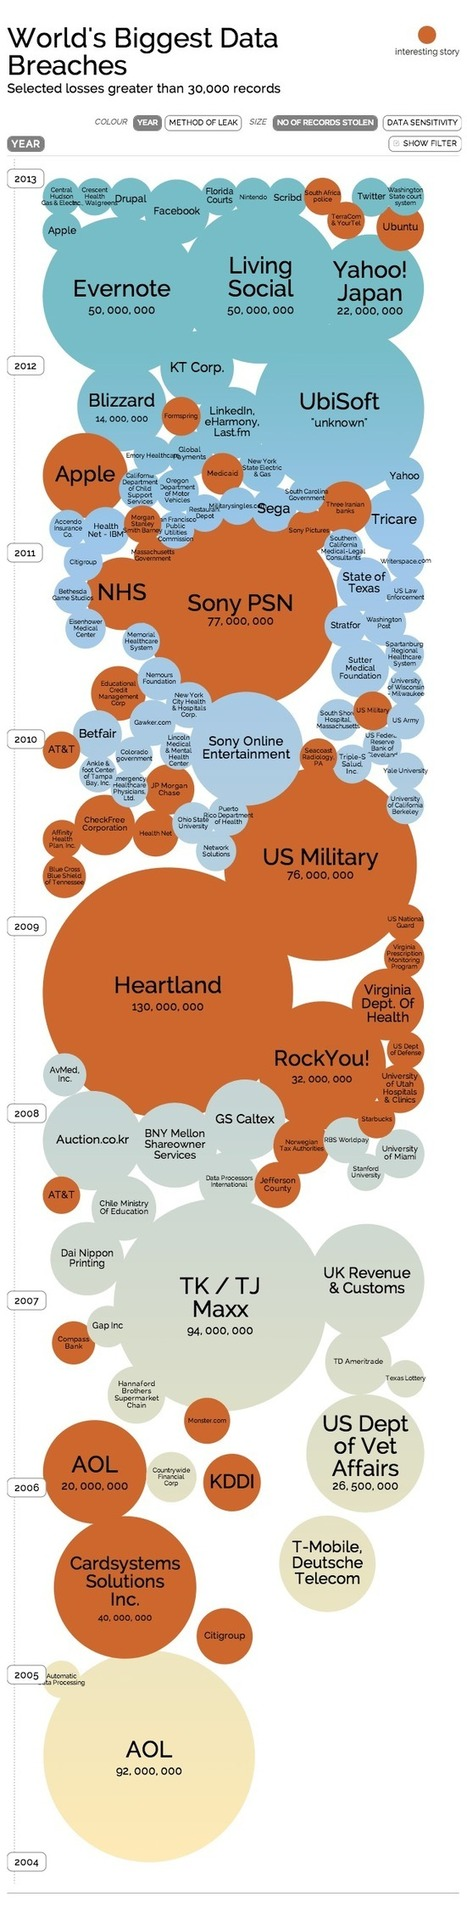 Worlds Biggest Data Breaches - Infographic - Cryptophone Australia | Technologies numériques & Education | Scoop.it